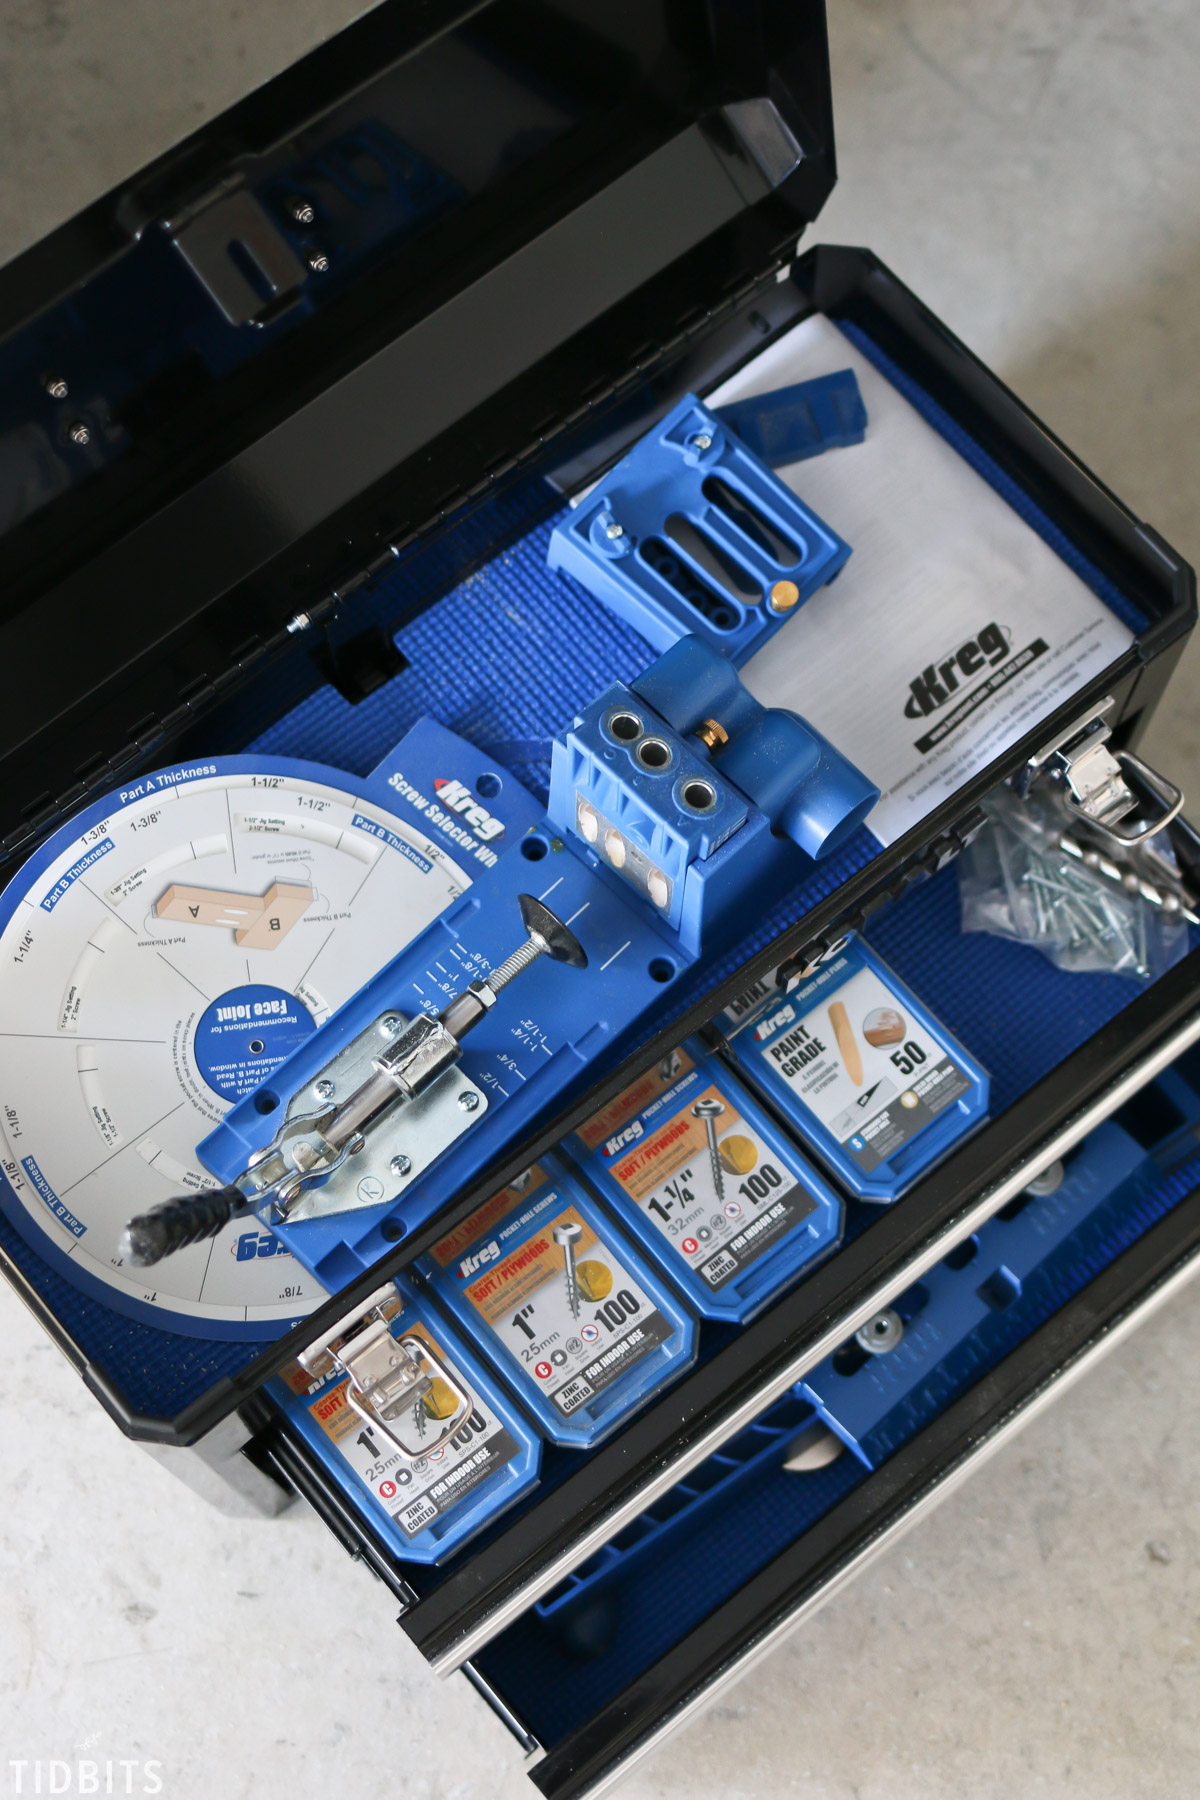 Kreg Jig set in tool box